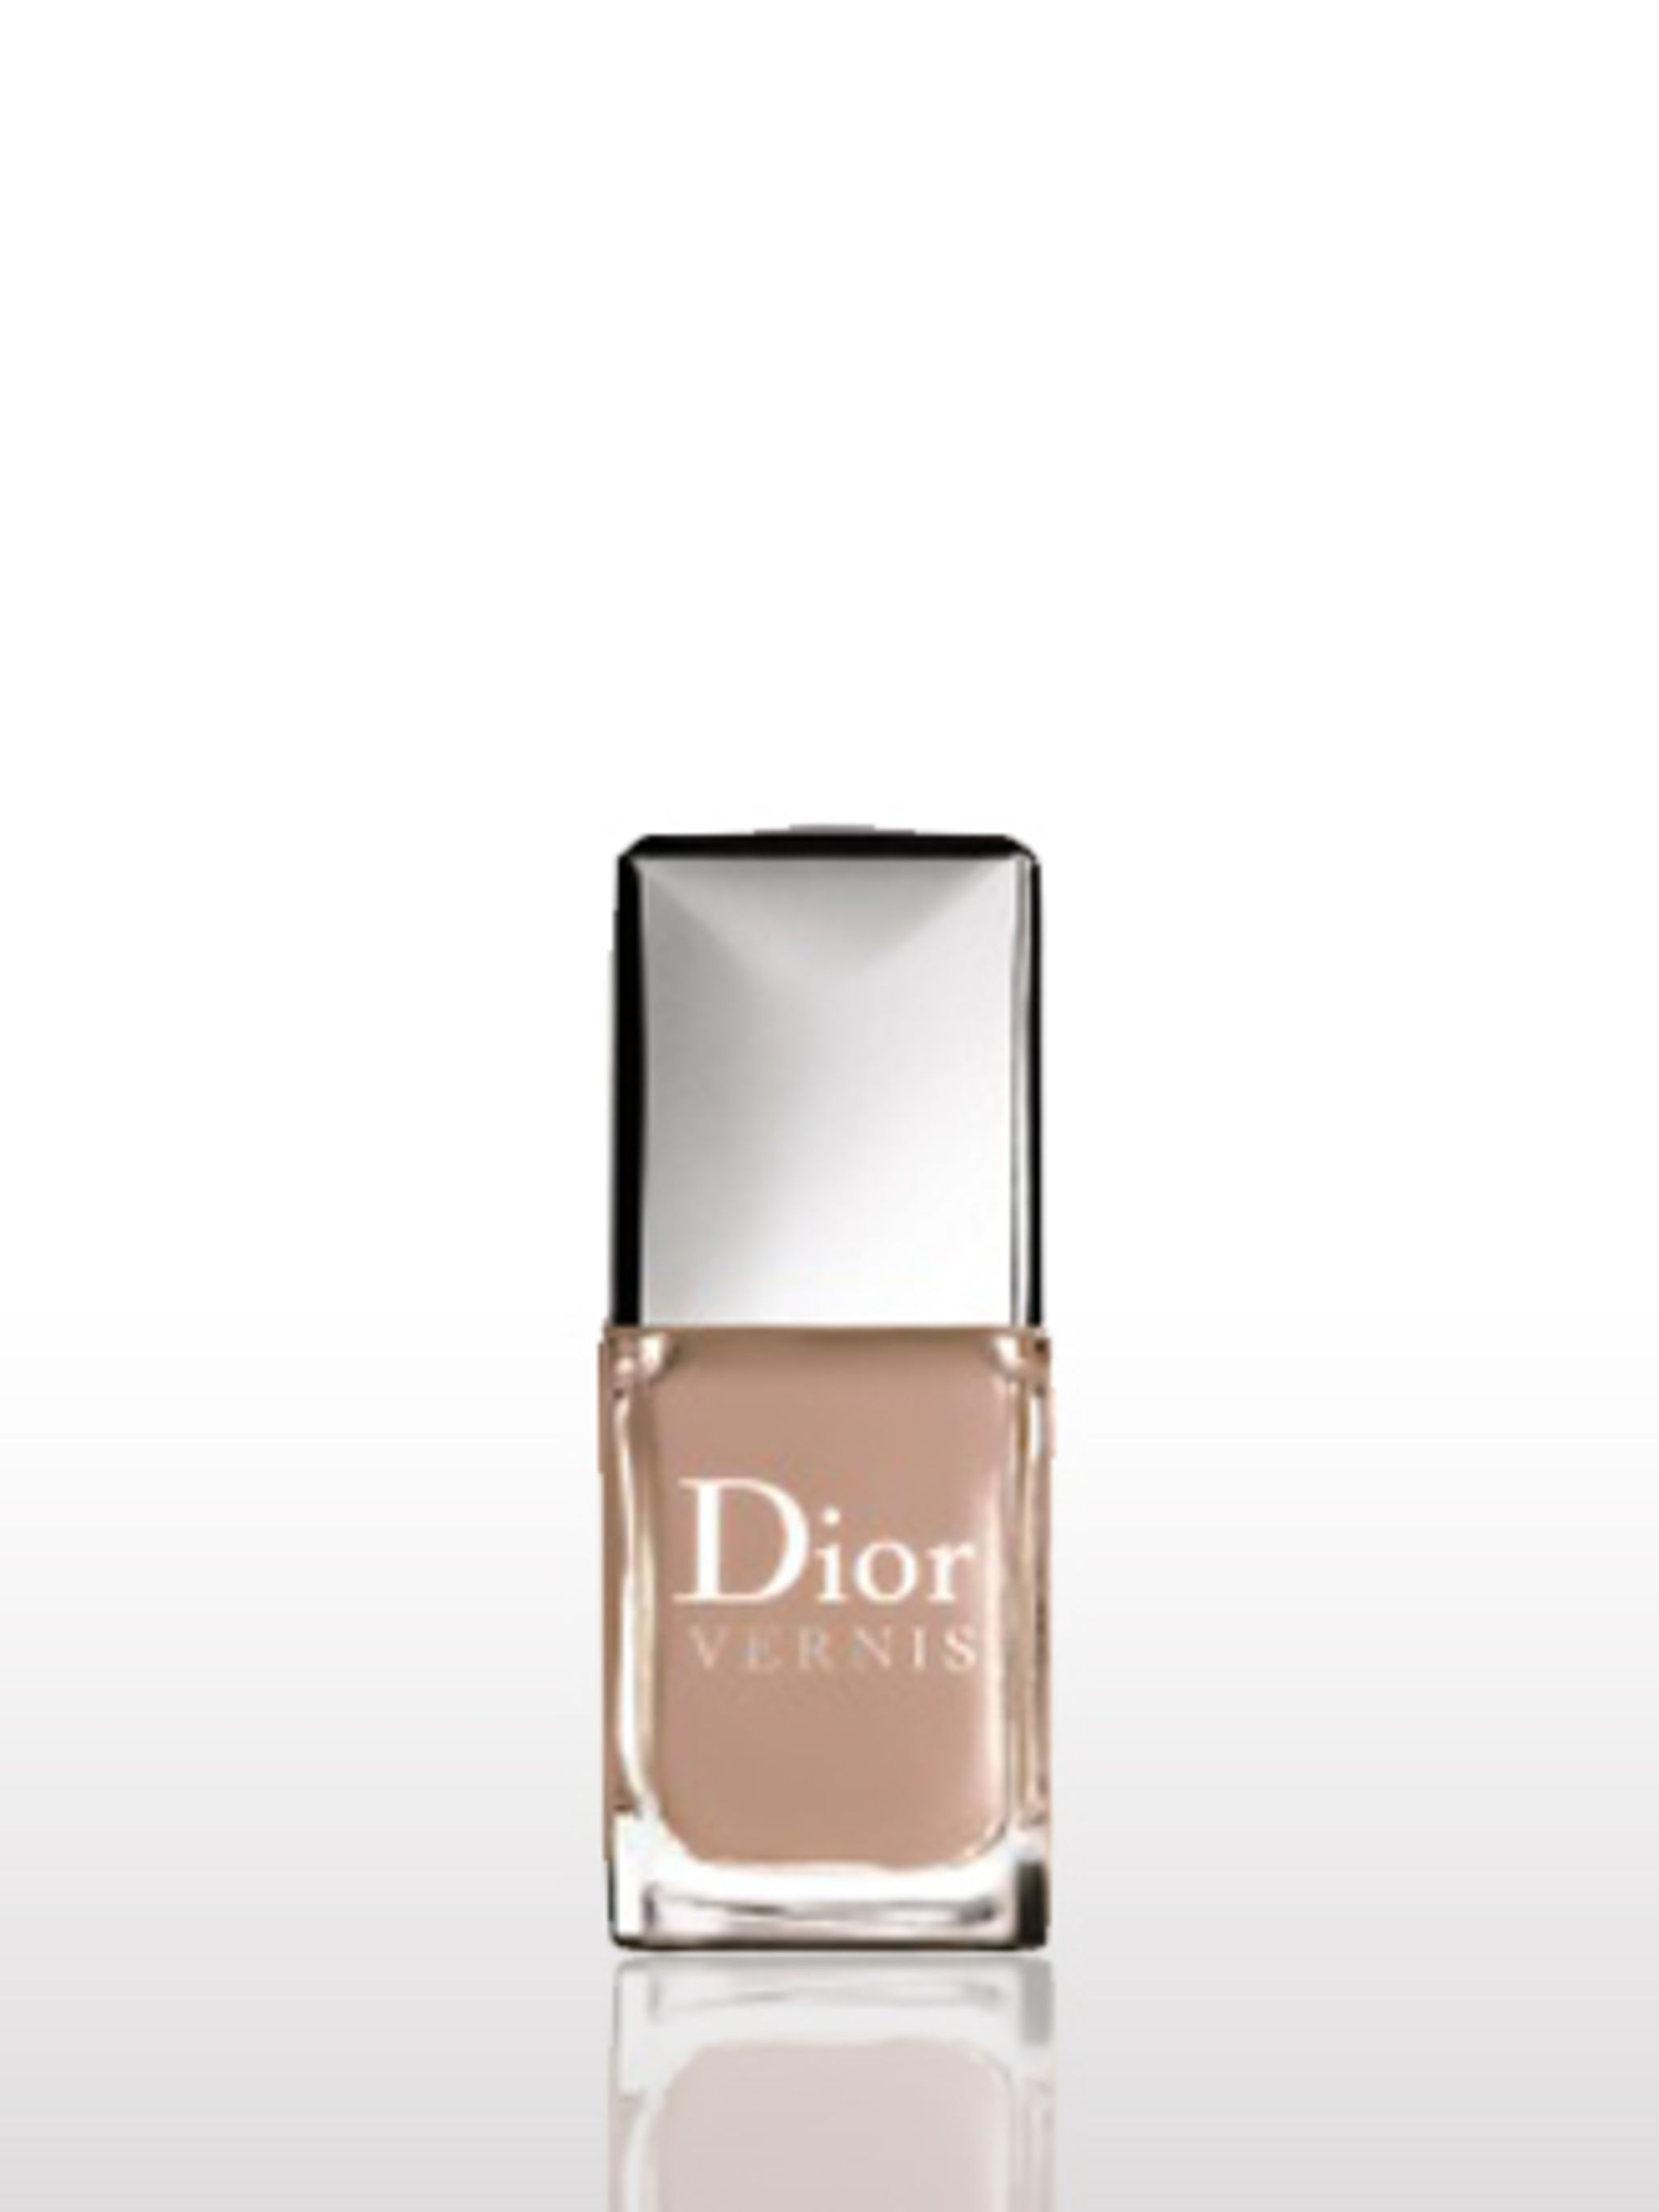 <p>Vernis nail polish in '219', £14, by Dior. For stockists call 0207 216 0216</p>